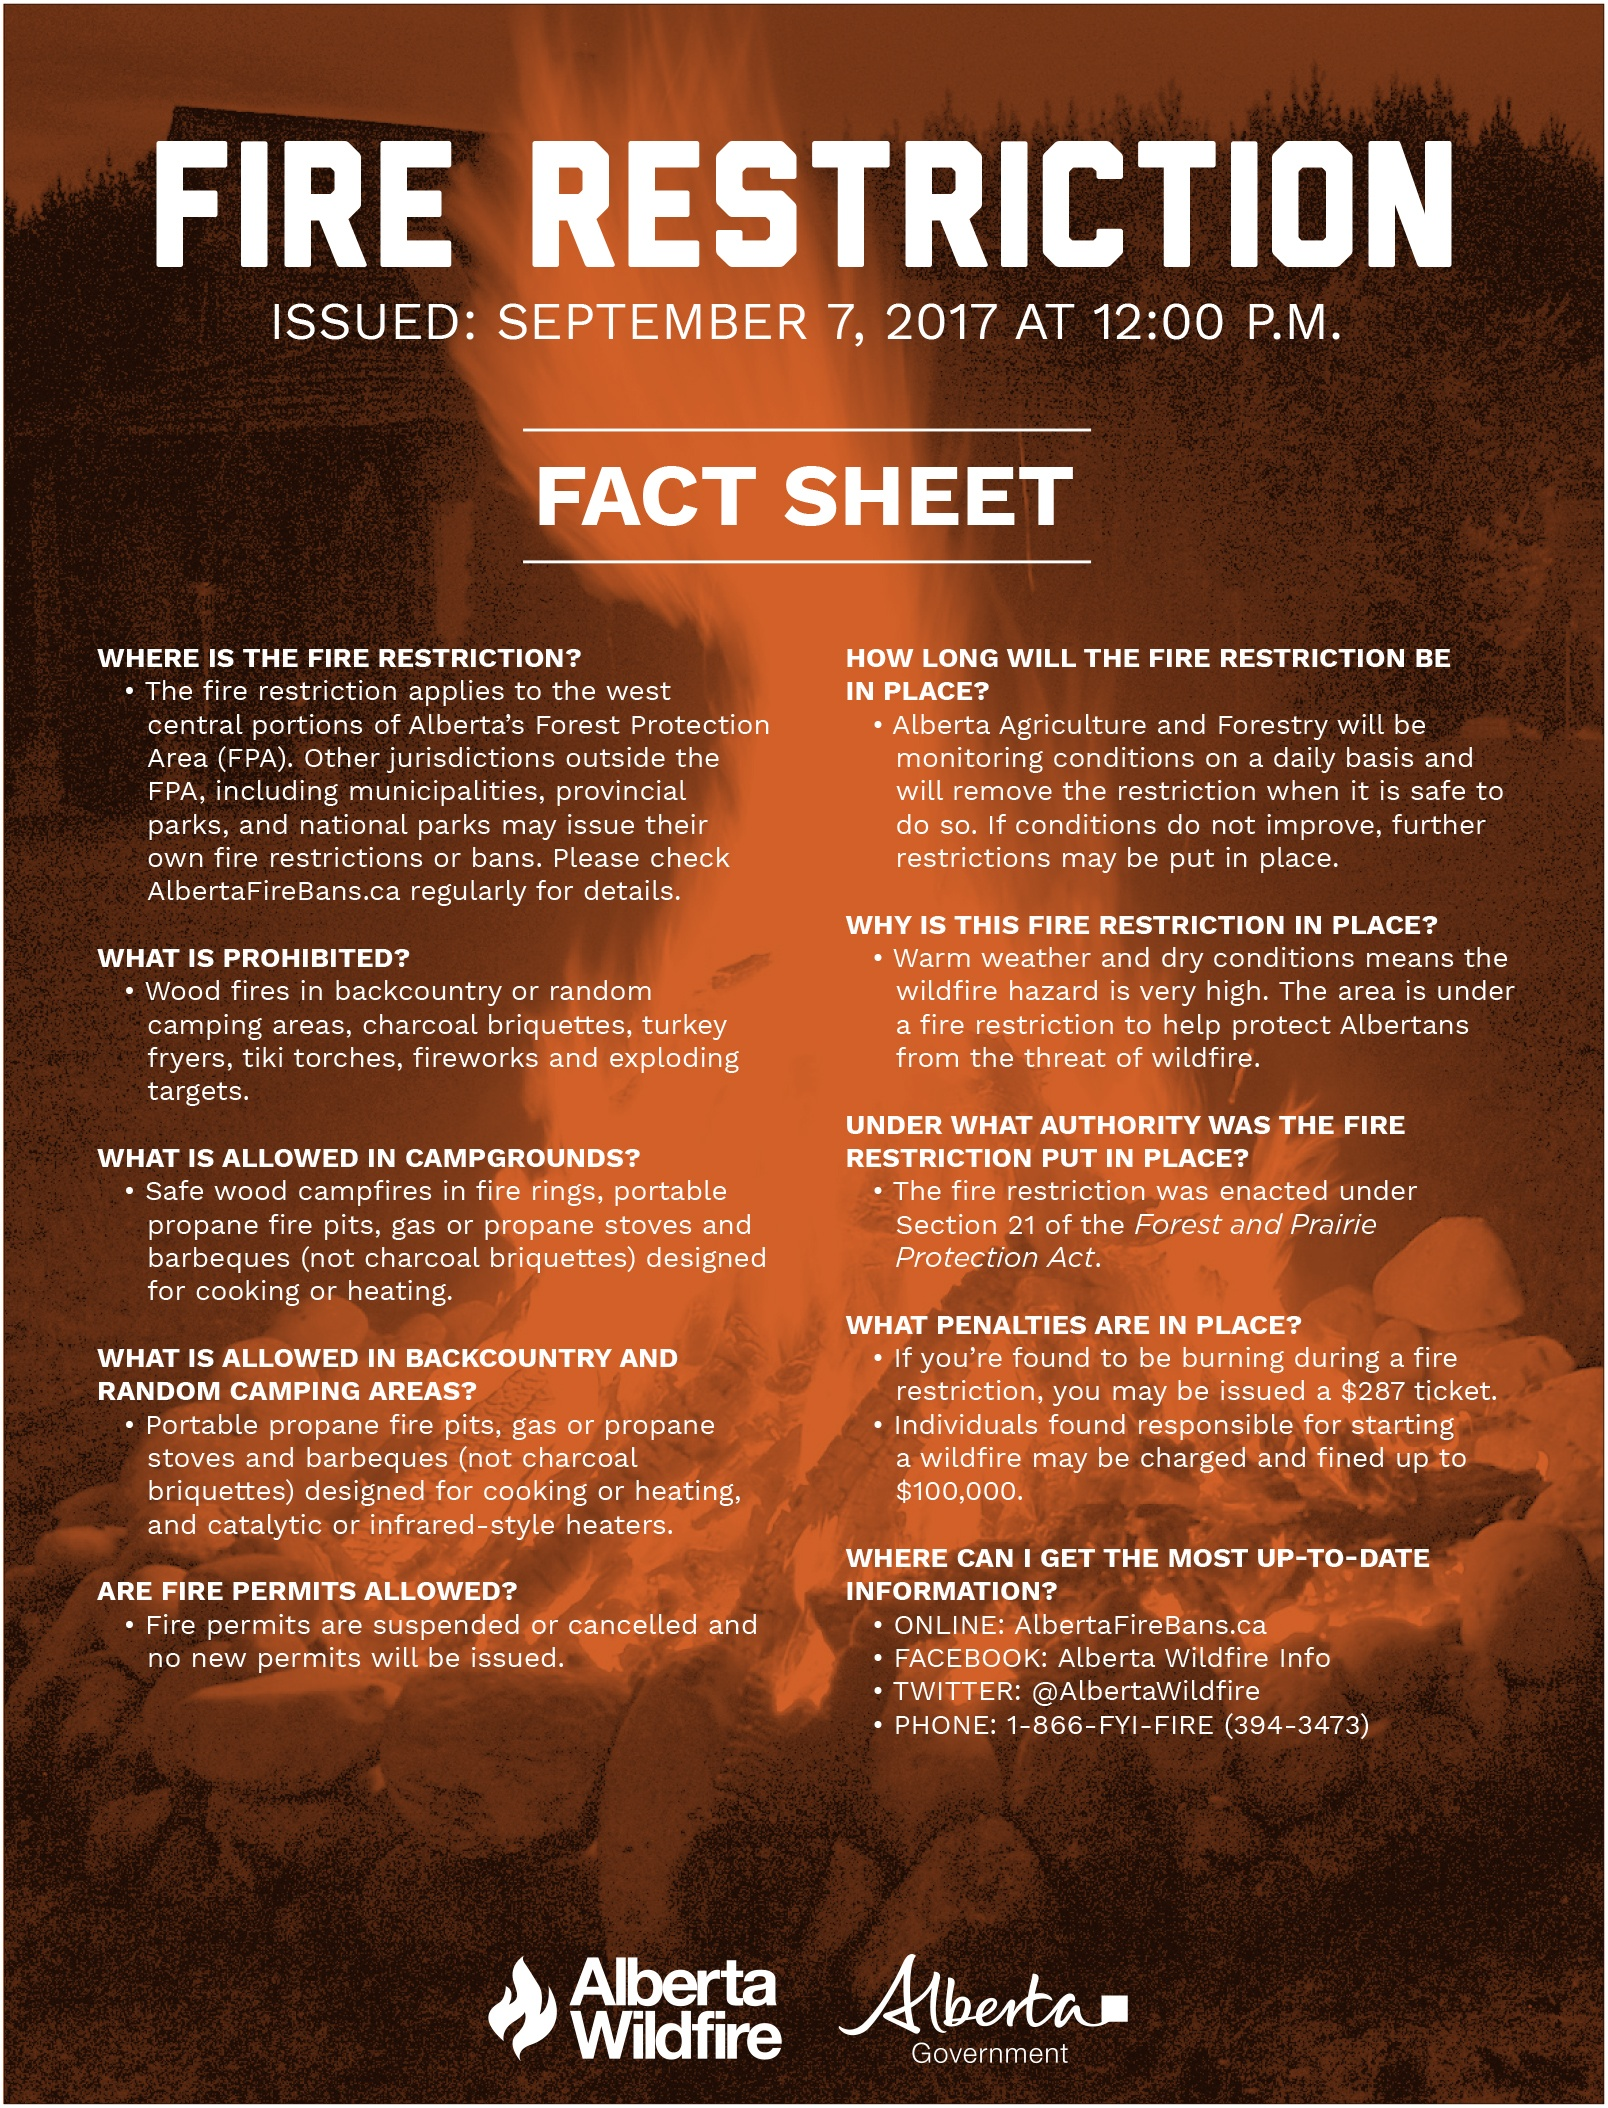 FBS_FireRestriction_FactSheet_8.5x11_Sept7.jpg